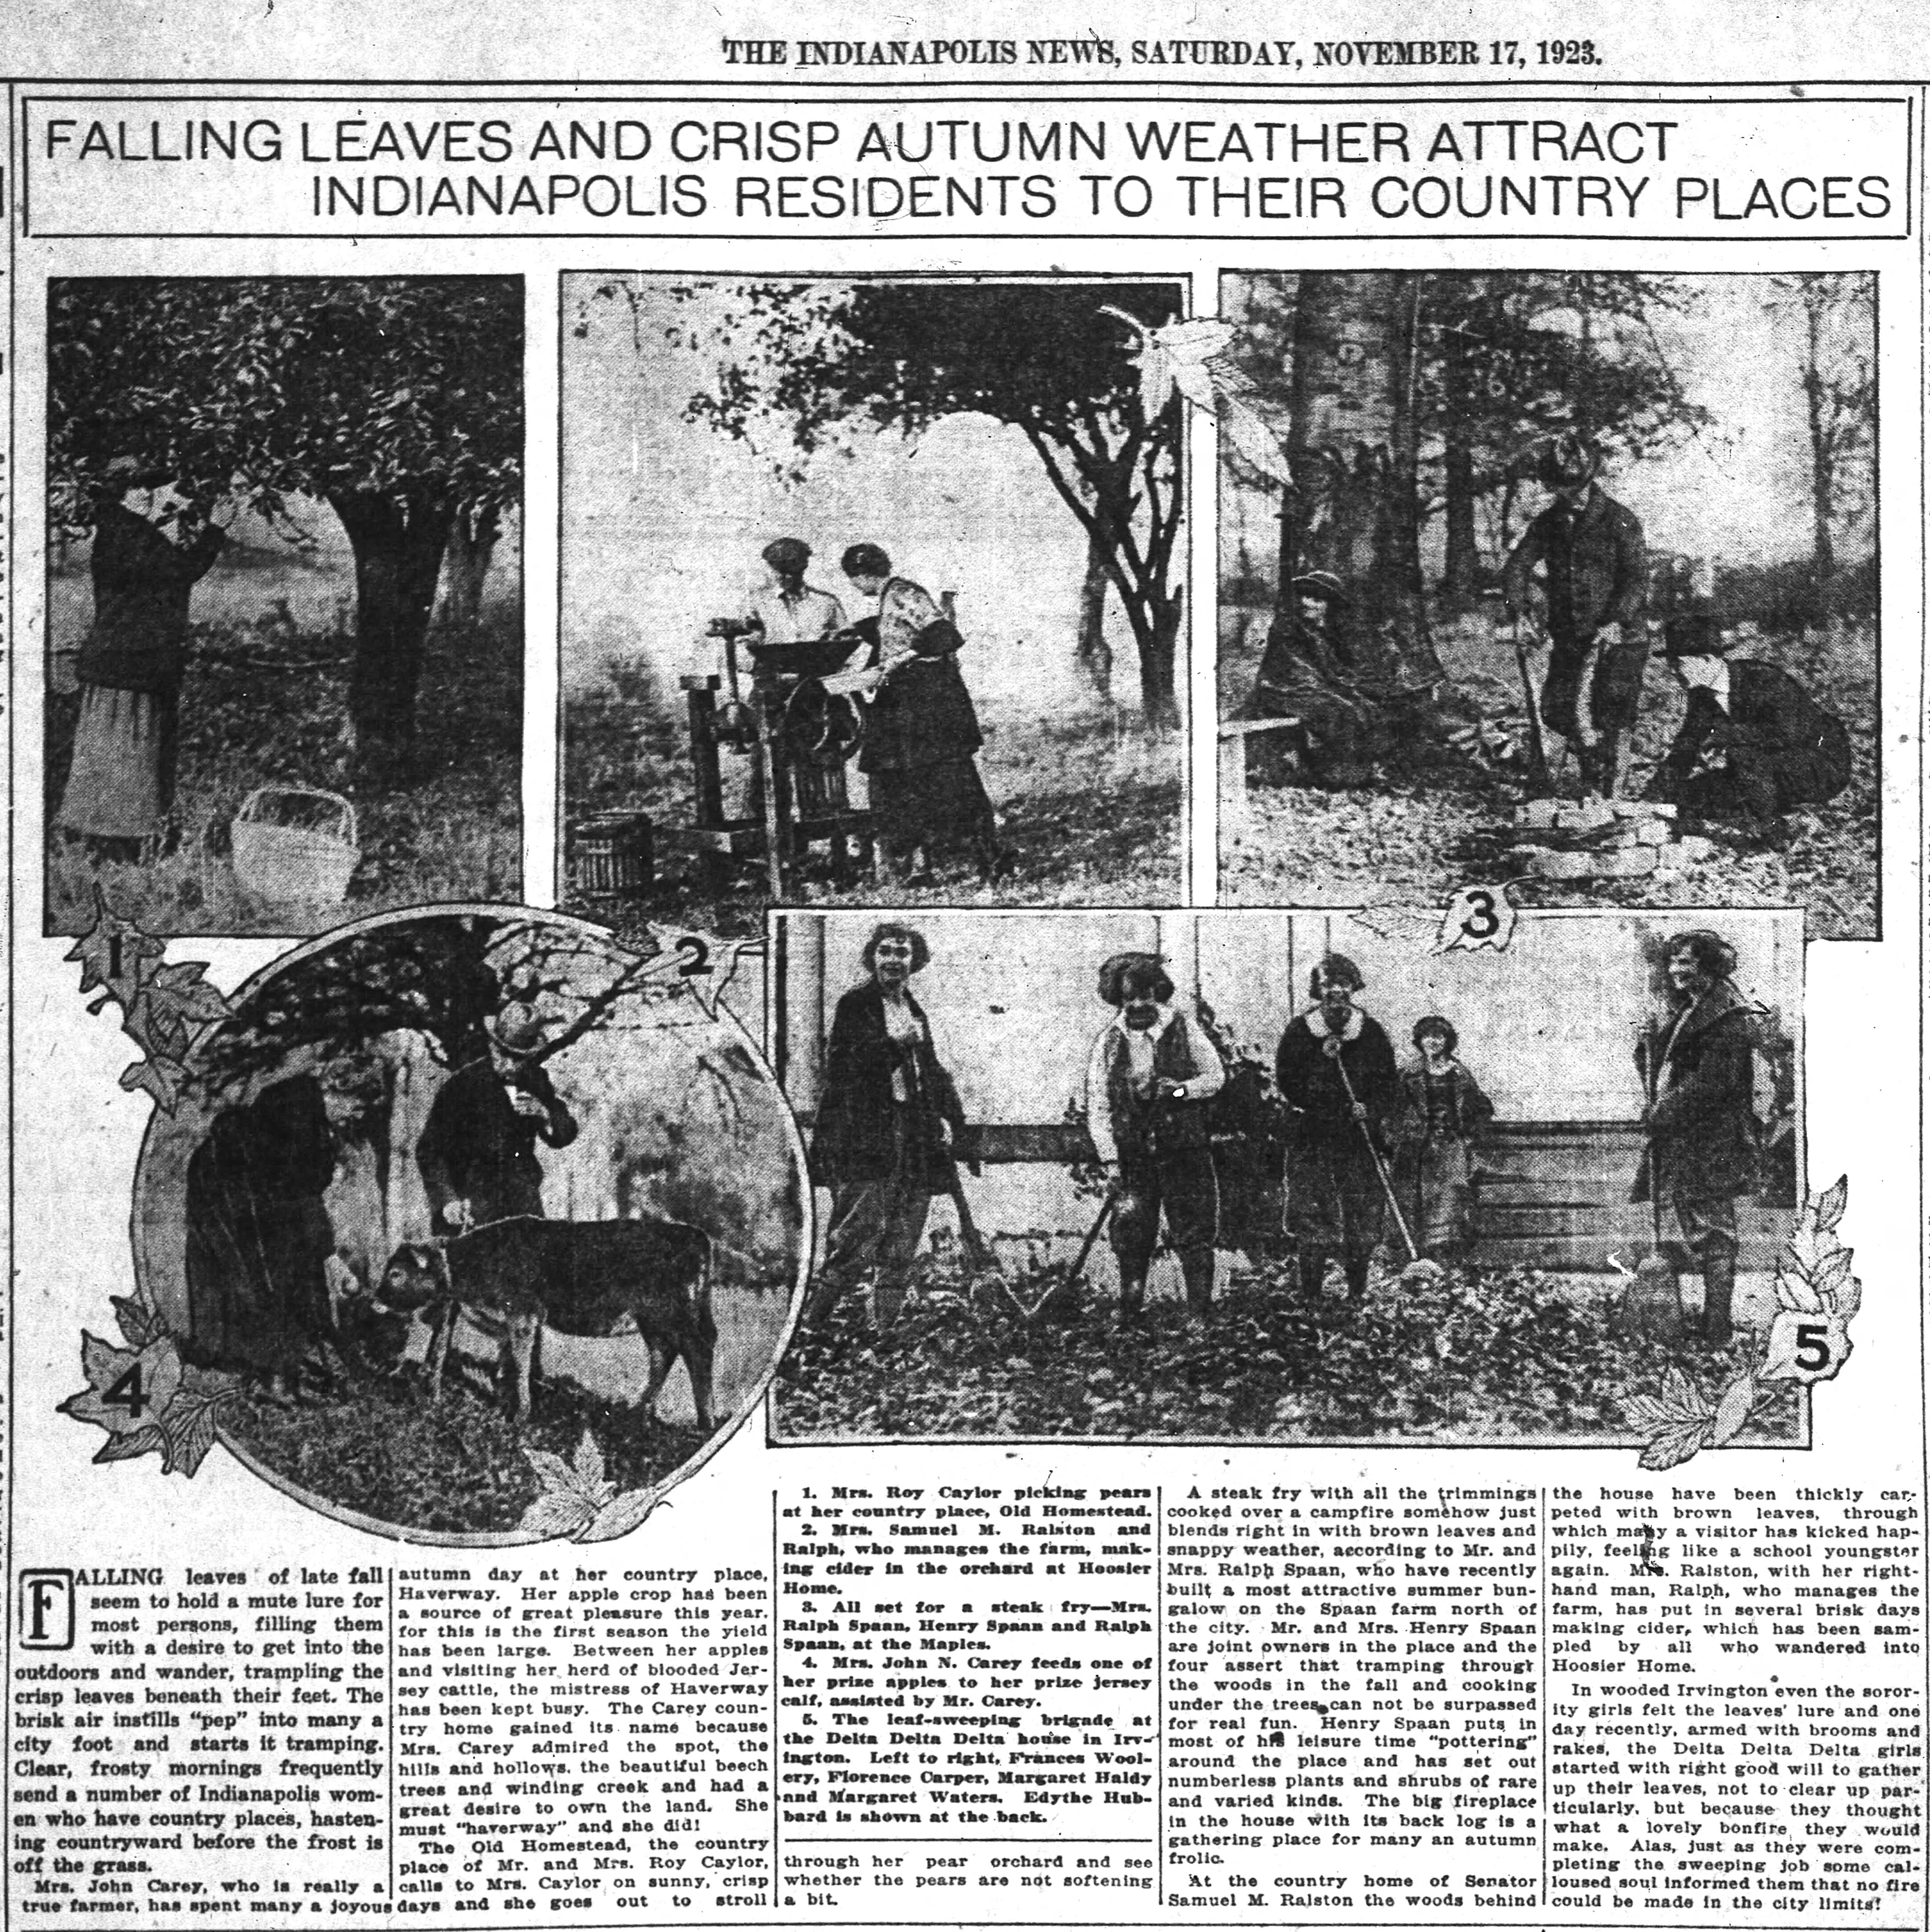 1923 Indianapolis News article described activities at the summer homes of several city residents (scan courtesy of newspapers.com)